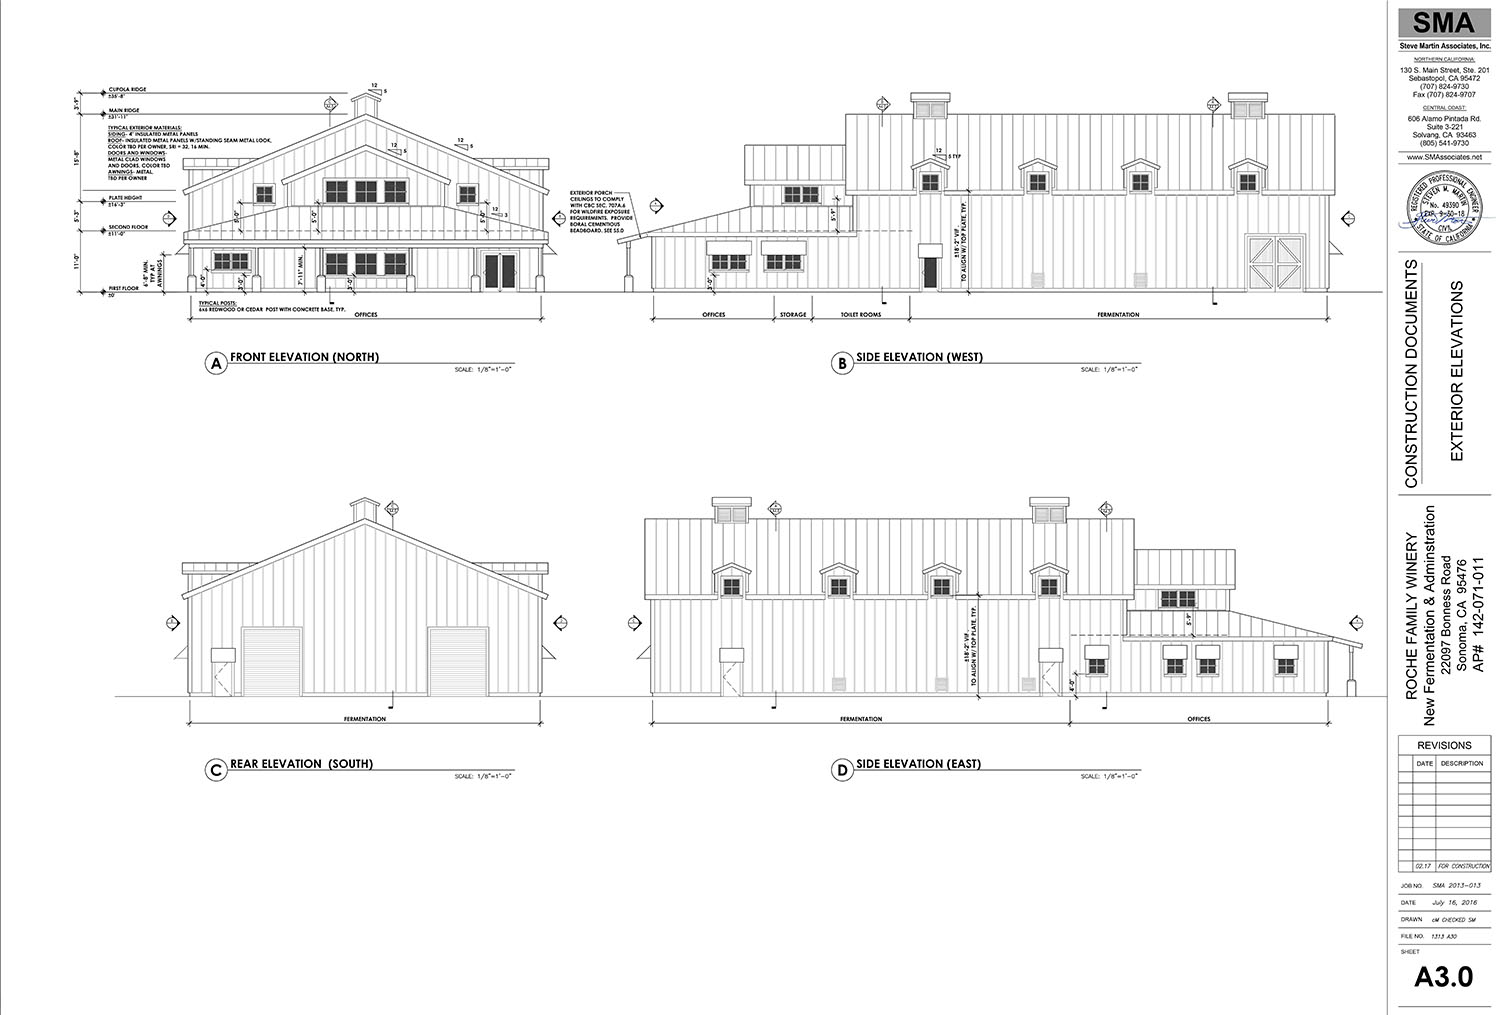 Construction will begin in 2017 on the winery's Administration/Fermentation Building as well as on the Barrel/Tasting Room Building